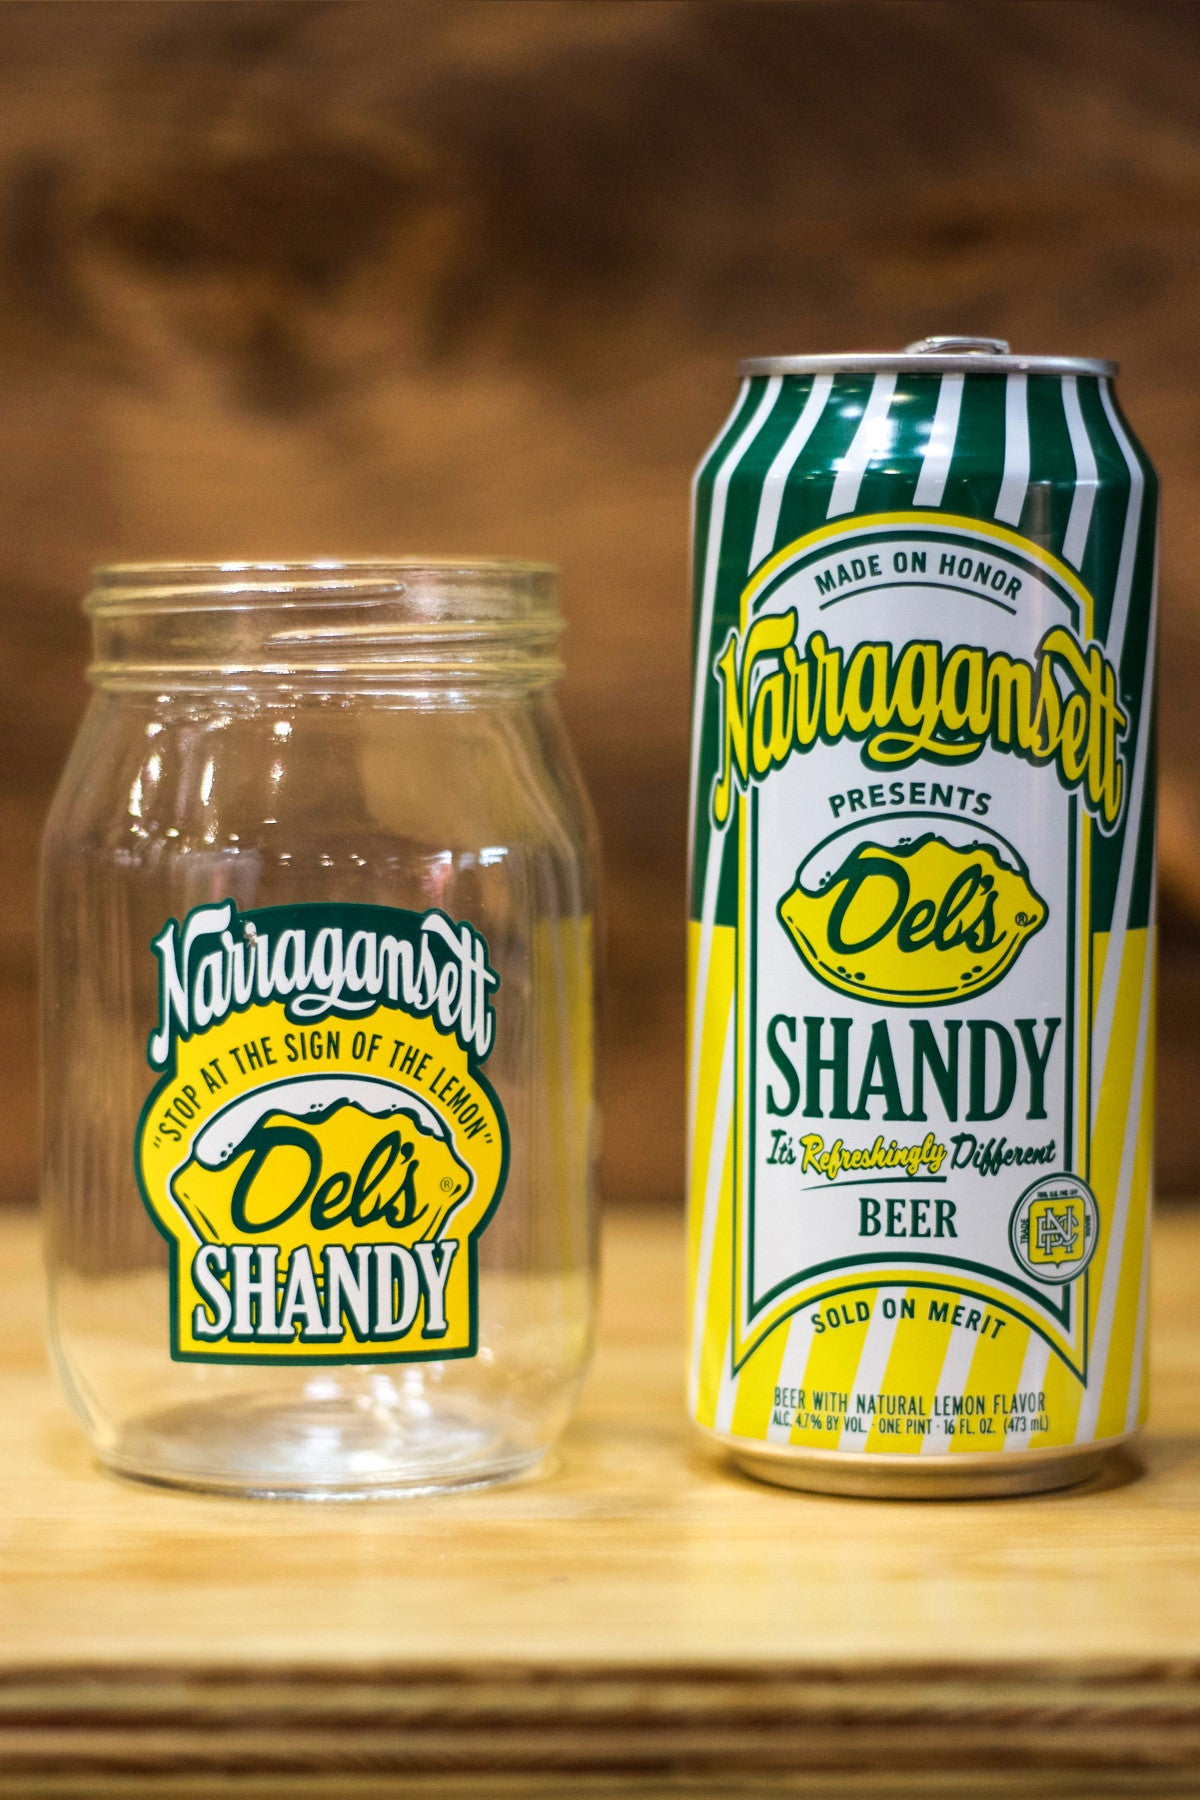 The Del's Shandy Jar